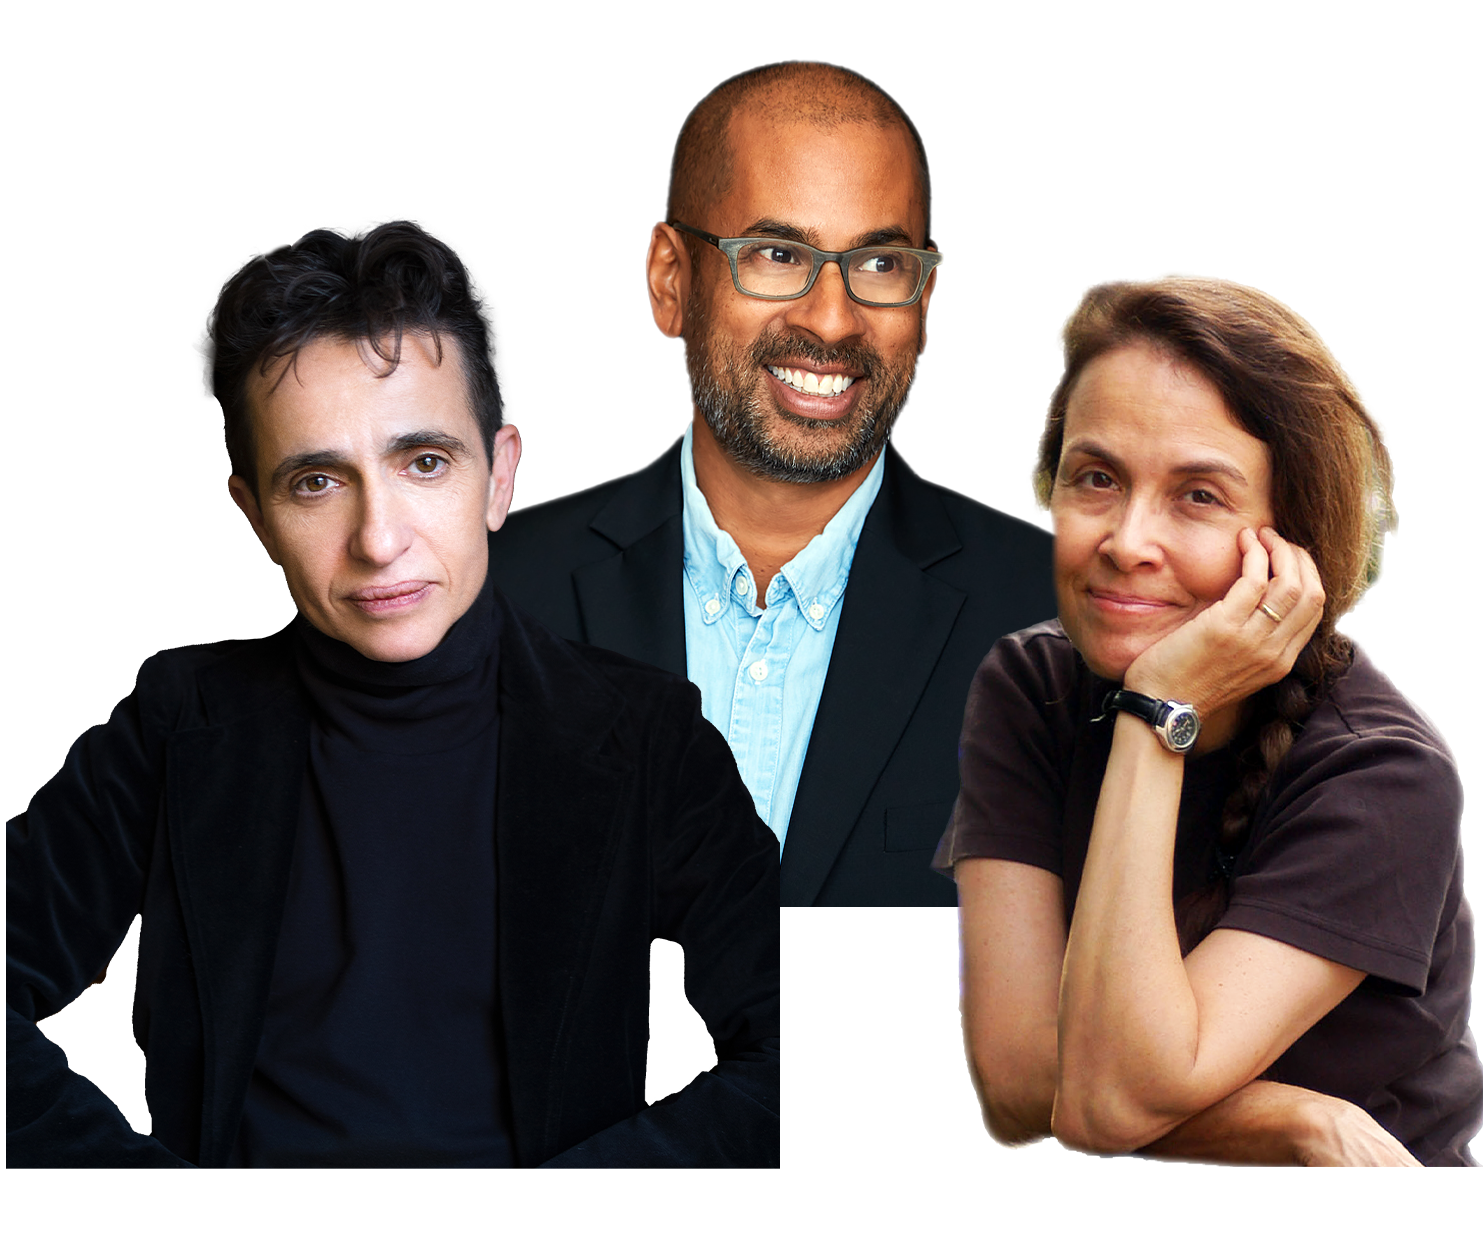 The Kirkus Prize judges dish with Tom and Megan ahead of our 2021 awards ceremony.